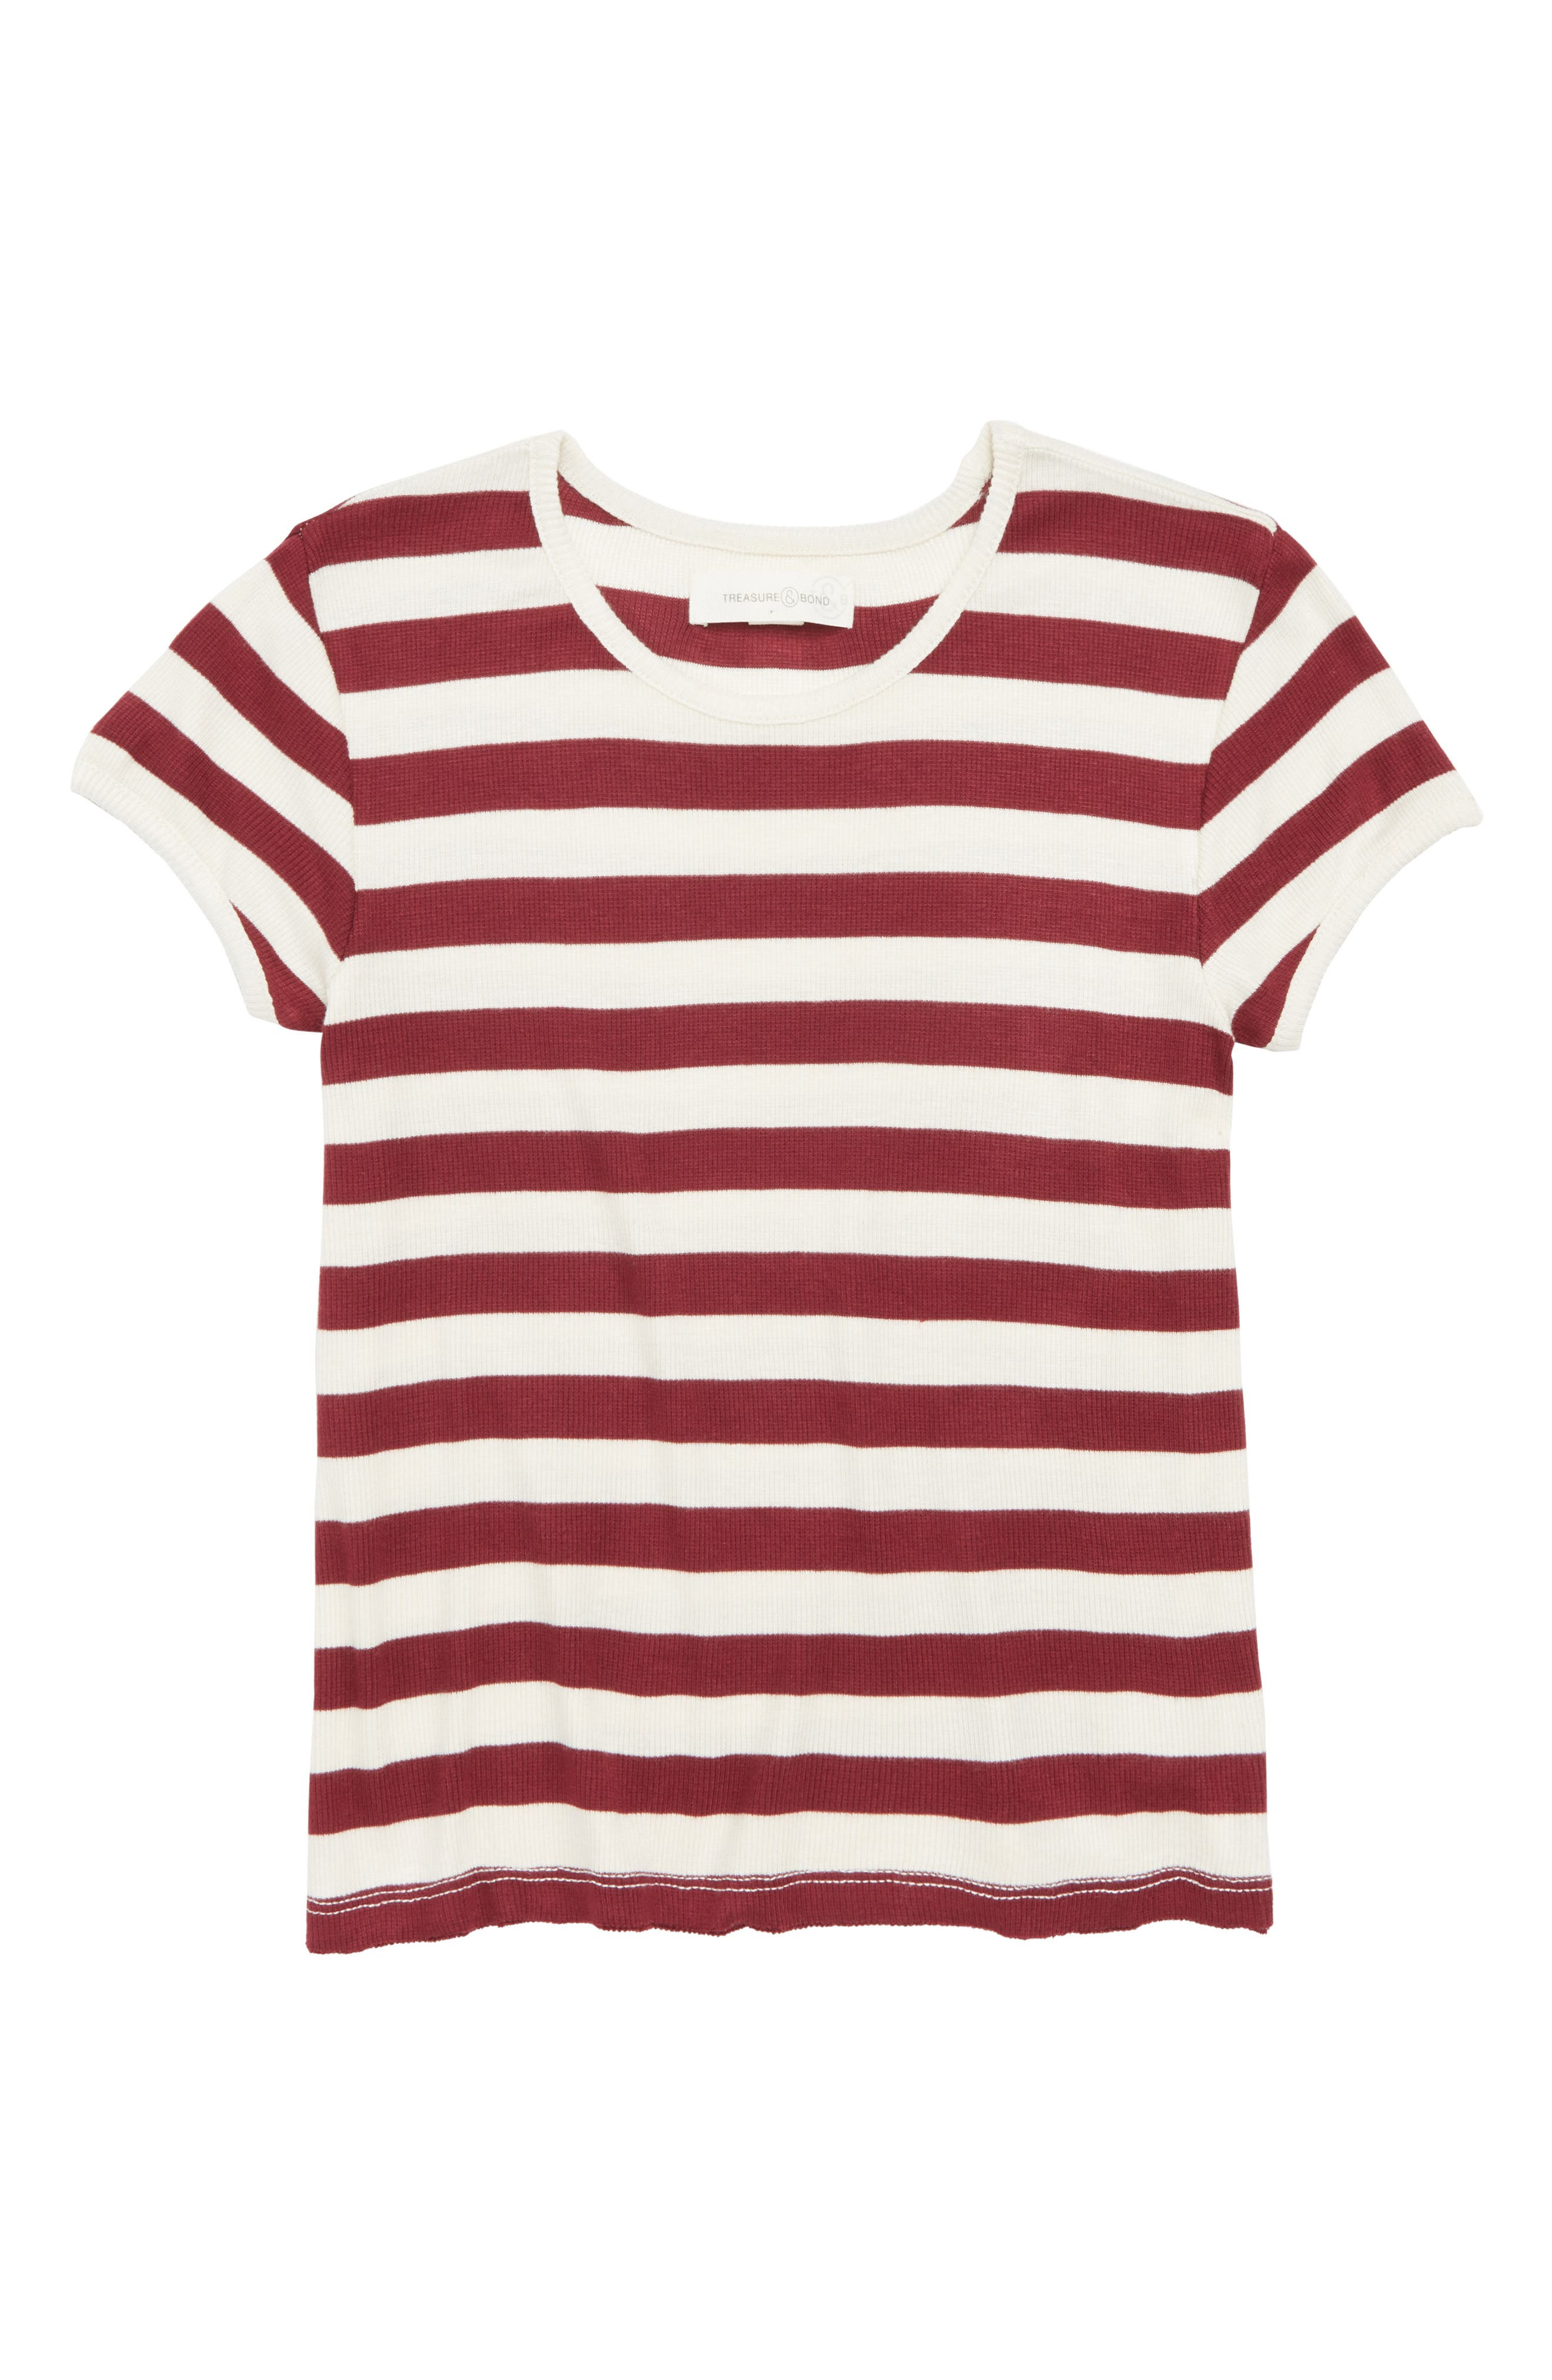 Stripe Knit Tee,                             Main thumbnail 1, color,                             Red Cordovan- Ivory Stripe